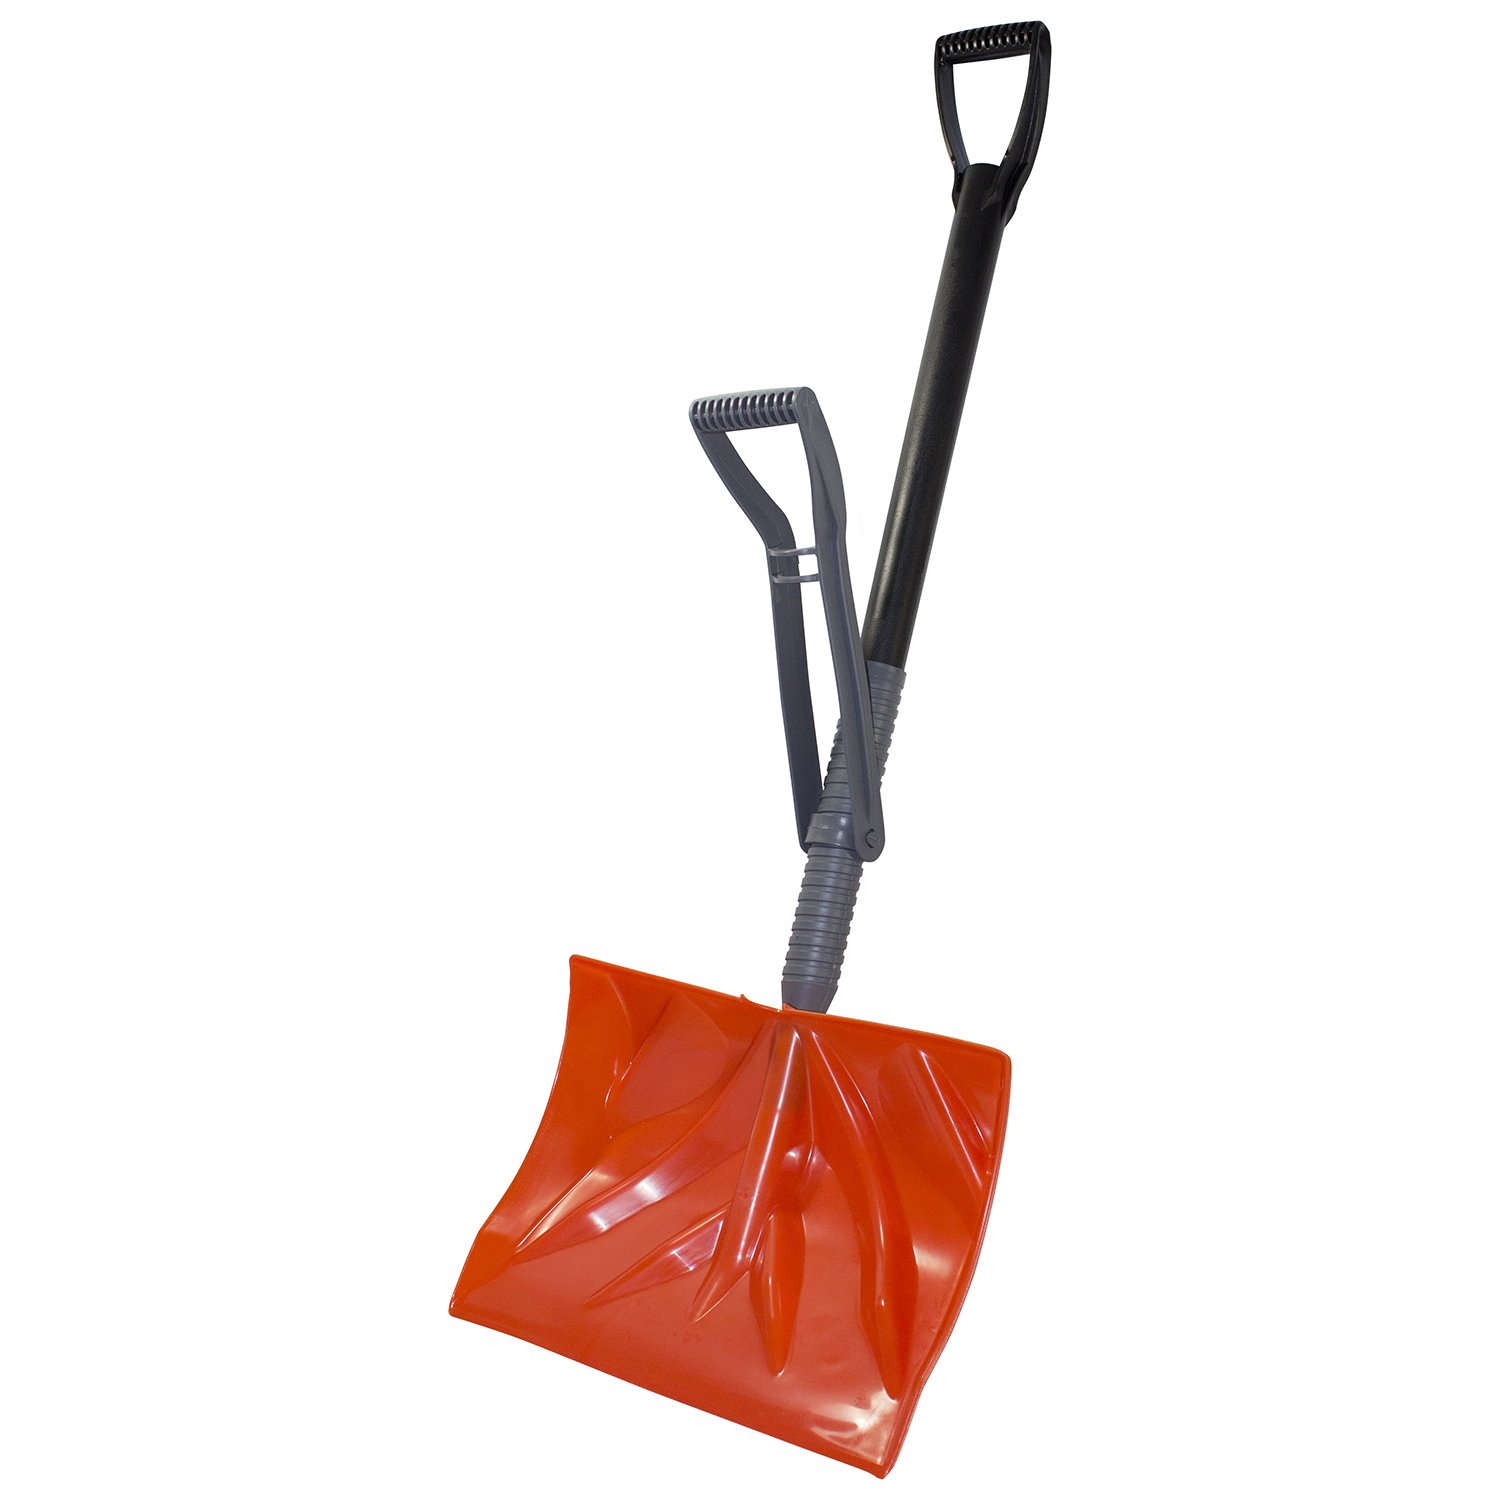 Emsco Group 1397-1 Bigfoot 18'' Combination Ergonomic Handle - Alleviates Bending and Strain on Lower Back - Adjusts Snow Shovel by Emsco Group